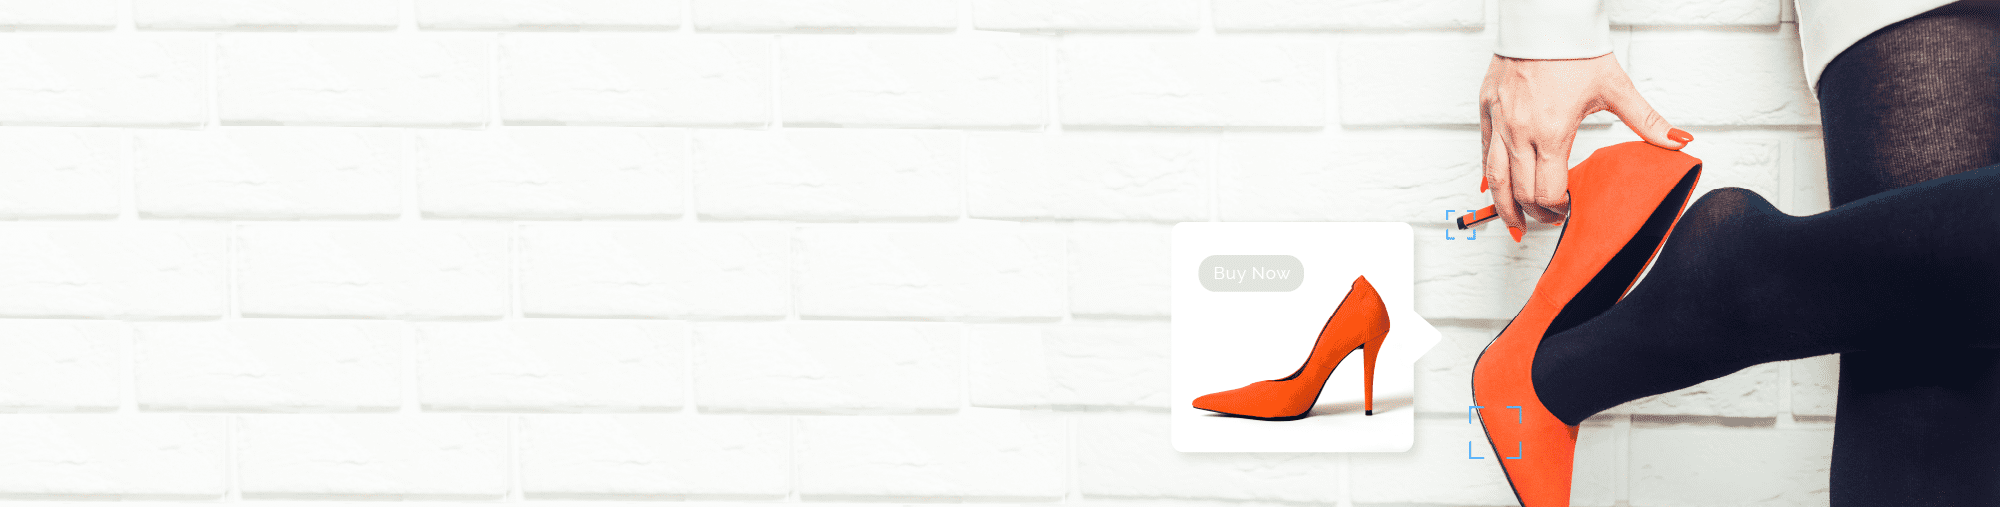 Close up of a hand grasping the heel of a red high heeled shoe and an inset image of the same red shoe in a display ad